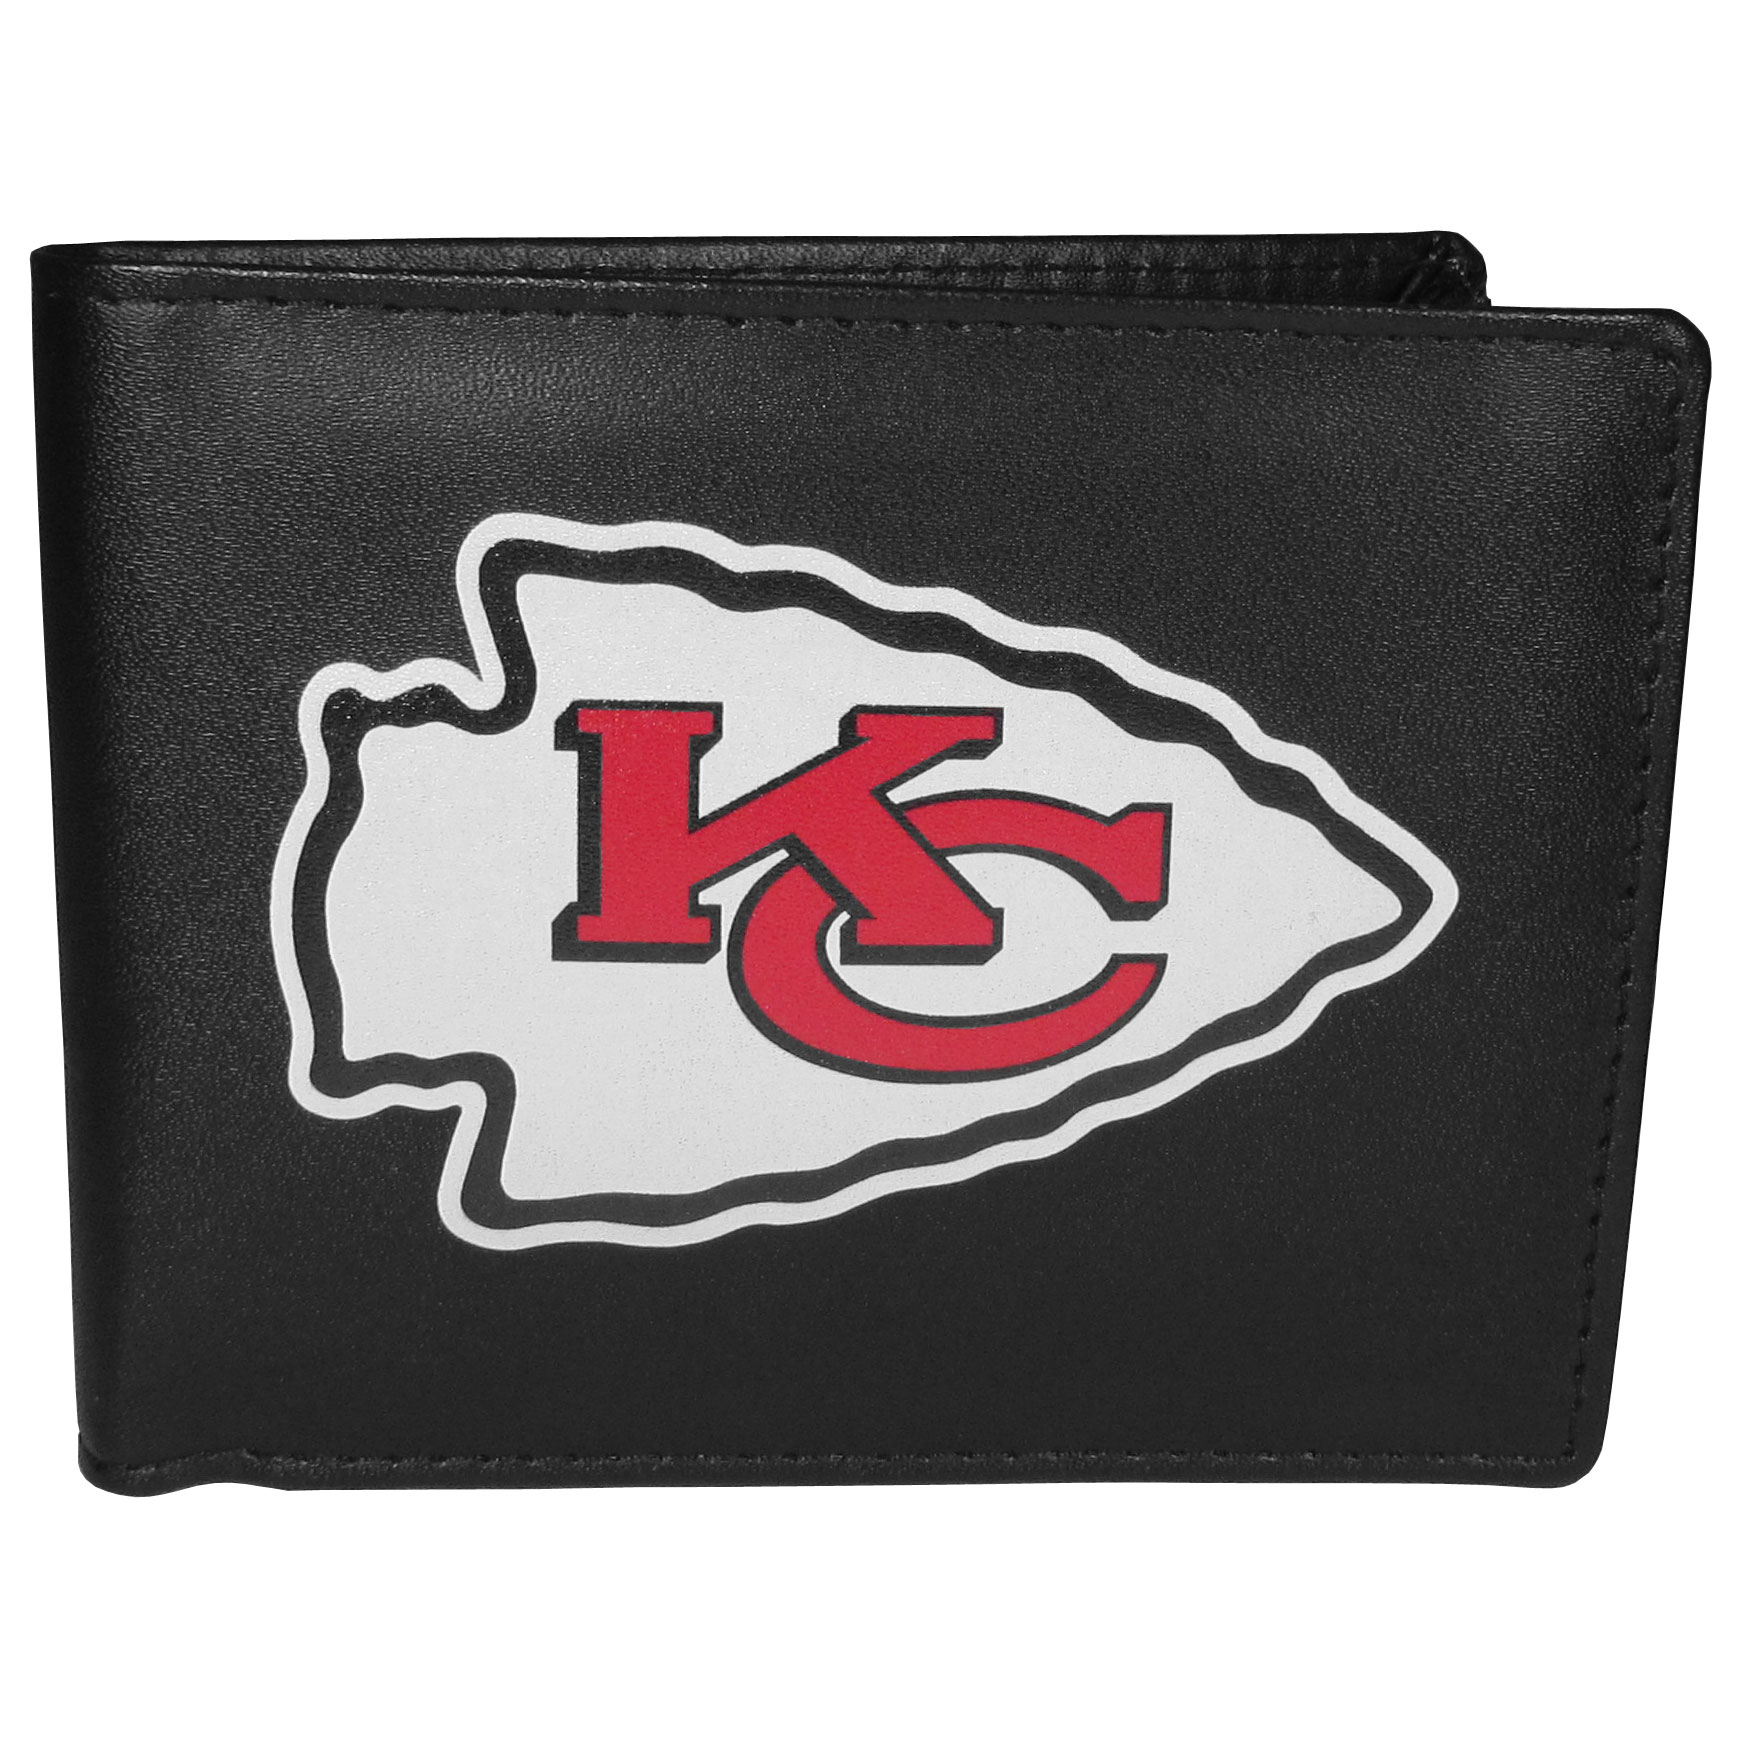 Kansas City Chiefs Bi-fold Wallet Large Logo - Sports fans do not have to sacrifice style with this classic bi-fold wallet that sports the Kansas City Chiefs extra large logo. This men's fashion accessory has a leather grain look and expert craftmanship for a quality wallet at a great price. The wallet features inner credit card slots, windowed ID slot and a large billfold pocket. The front of the wallet features a printed team logo.